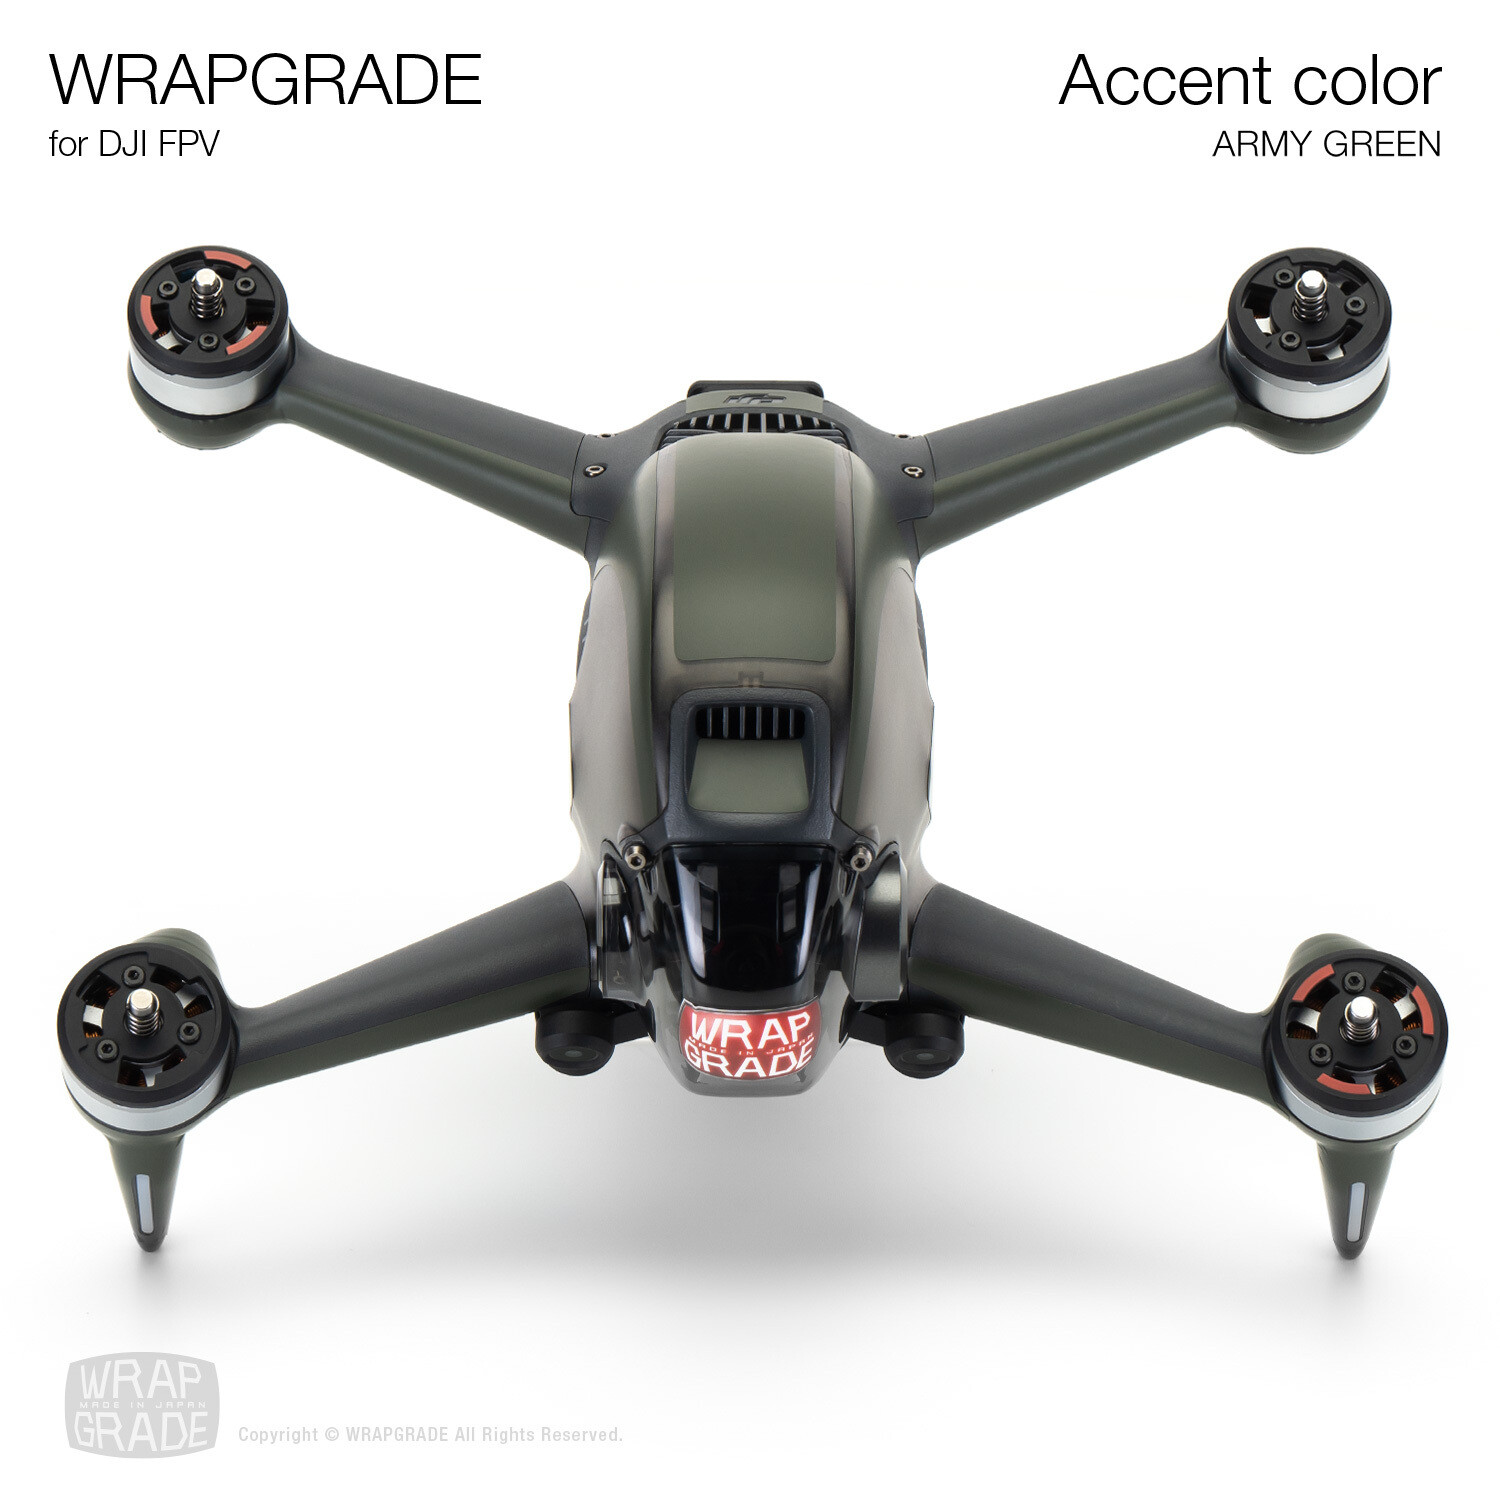 WRAPGRADE for DJI FPV | Accent color (ARMY GREEN)